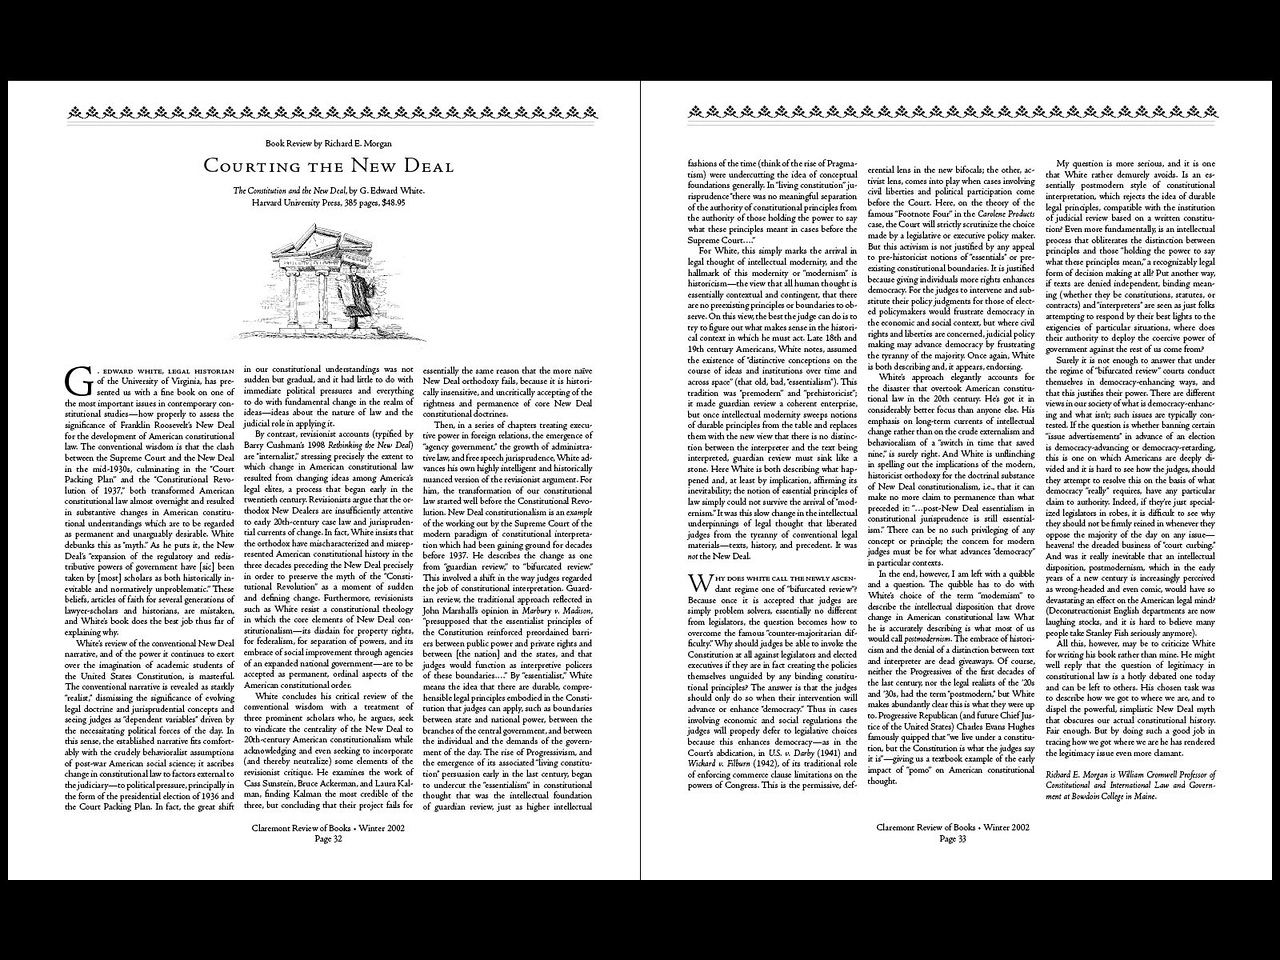 Design of Claremont Review pages: 3. This is the standard layout that we use most frequently.